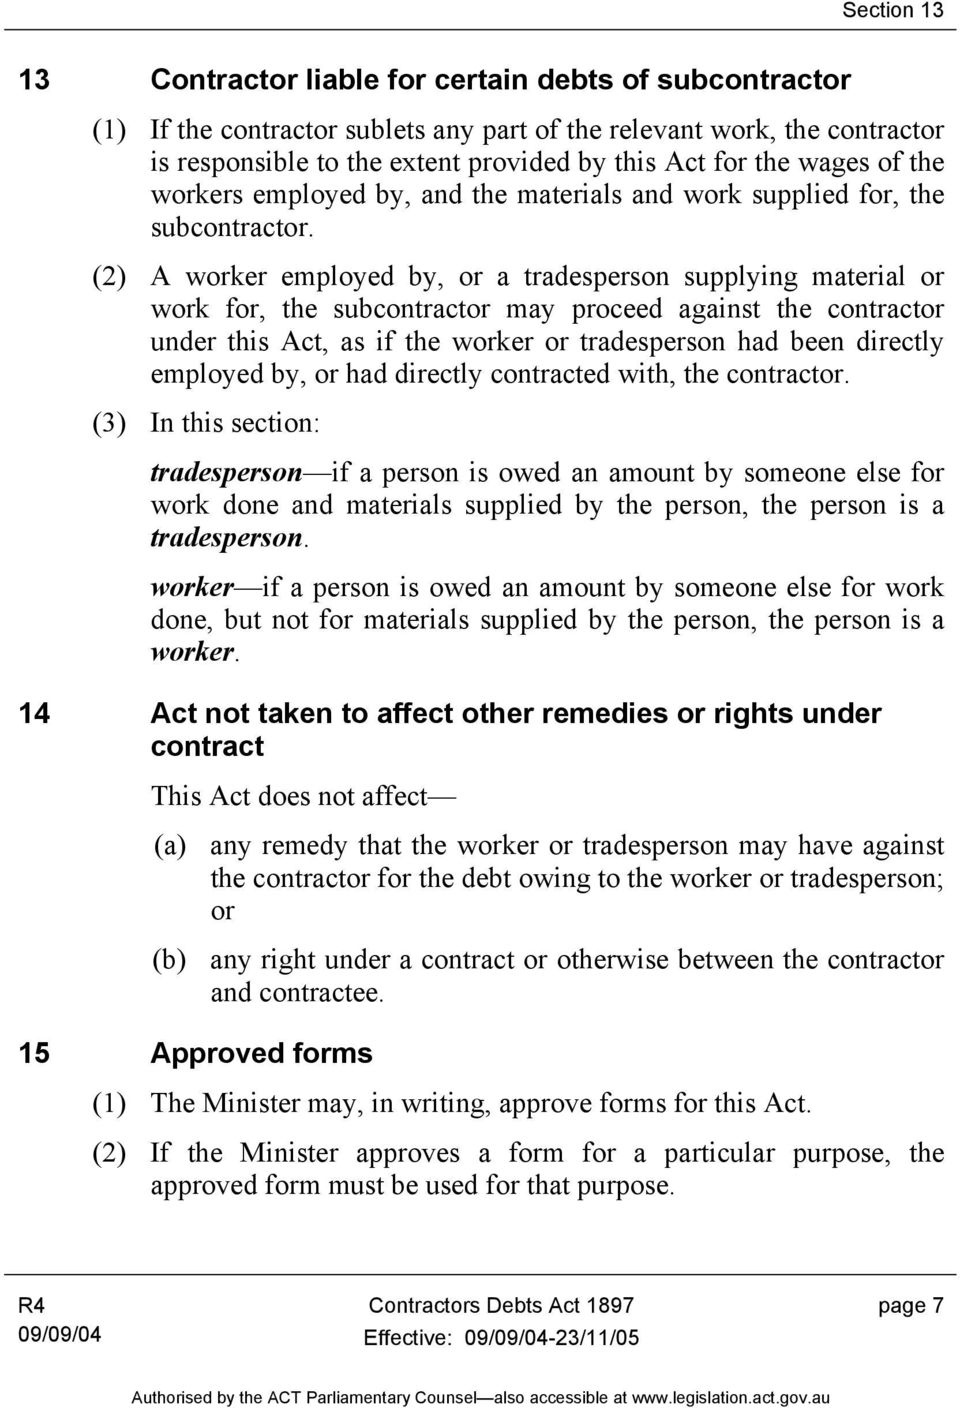 (2) A worker employed by, or a tradesperson supplying material or work for, the subcontractor may proceed against the contractor under this Act, as if the worker or tradesperson had been directly